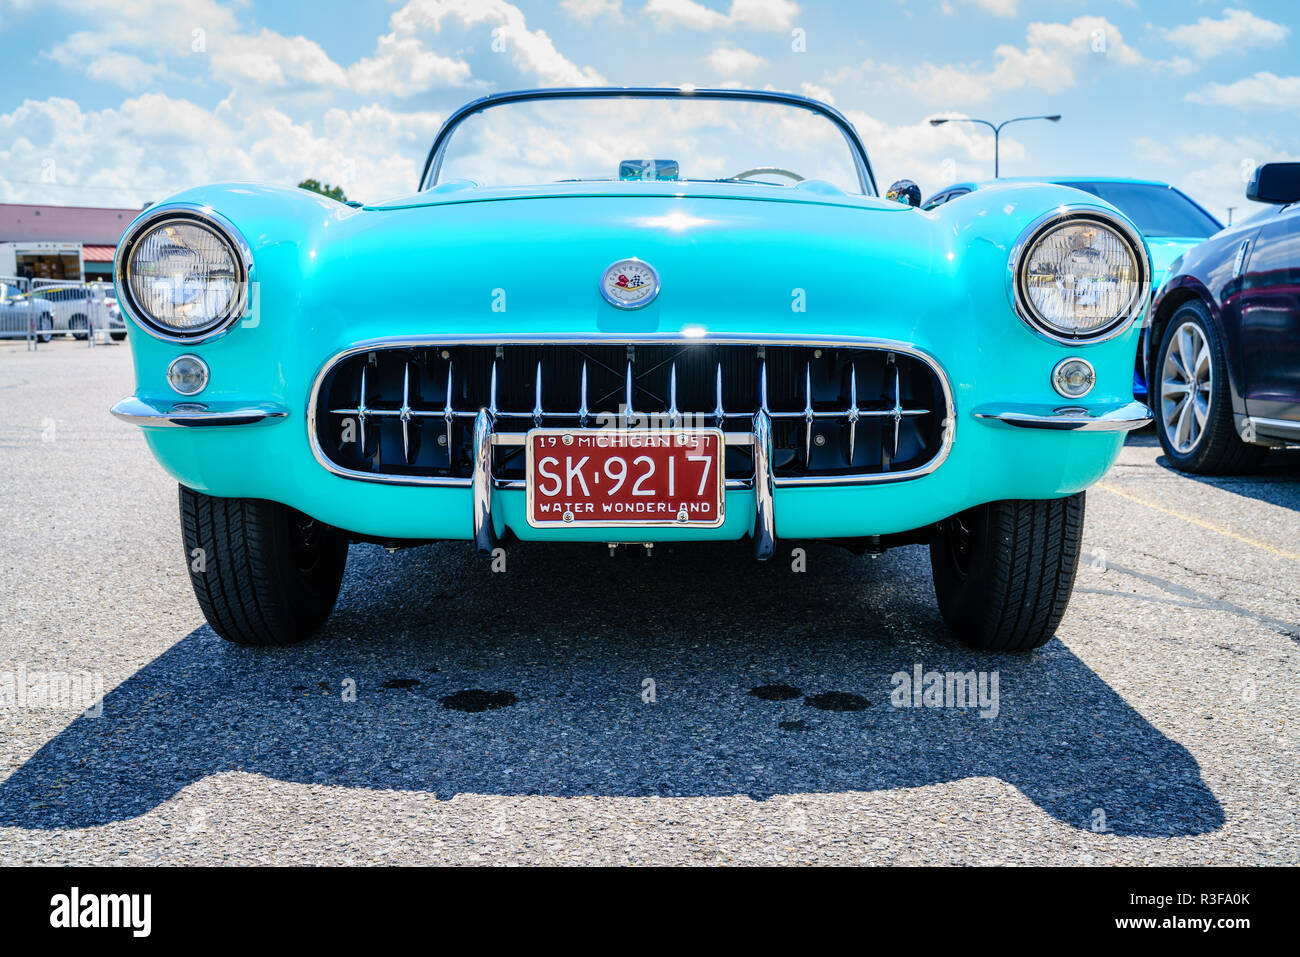 Detroit, Michigan, August 19, 2016: 1957 Corvette at Woodward Dream Cruise - largest one-day automotive event in USA - Stock Image